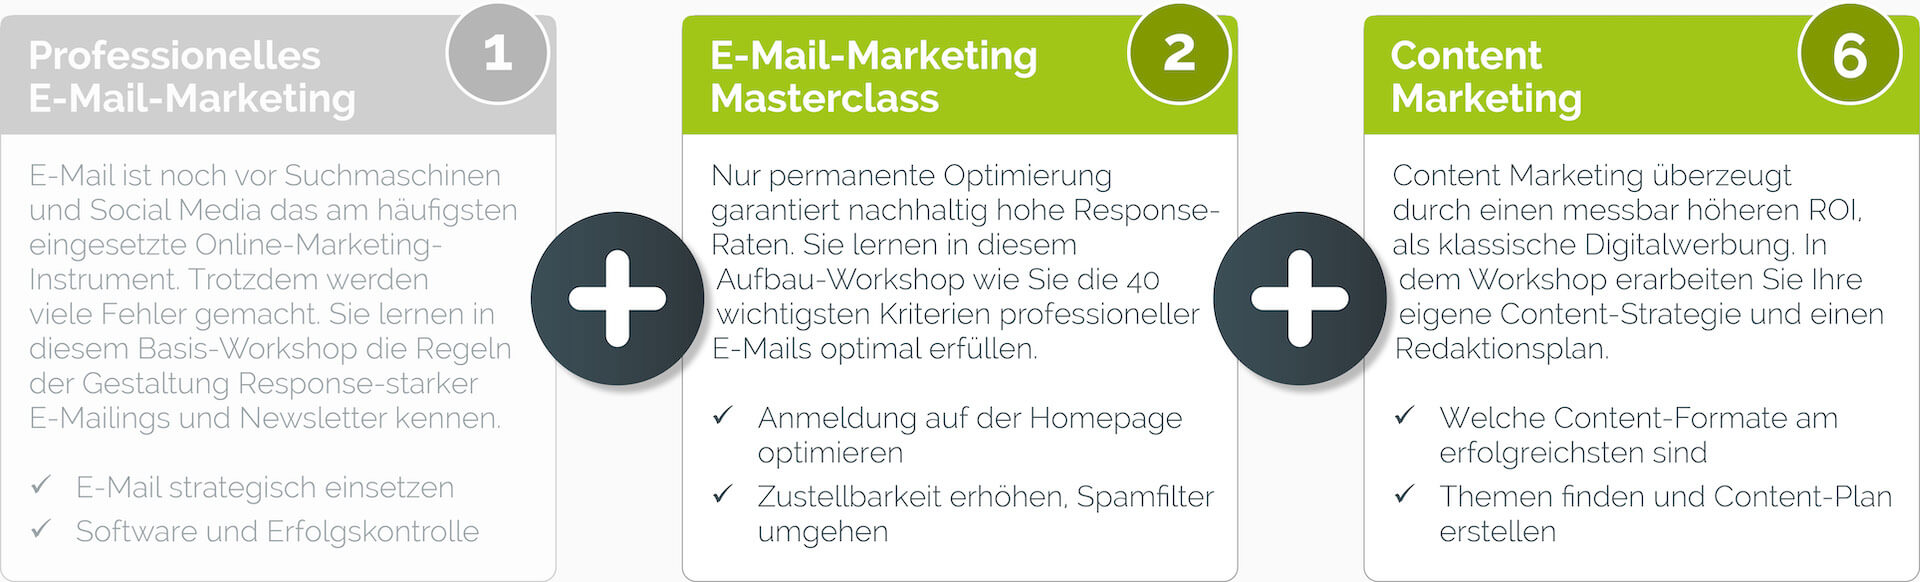 paket professionelles e mail marketing - Professionelles E-Mail-Marketing